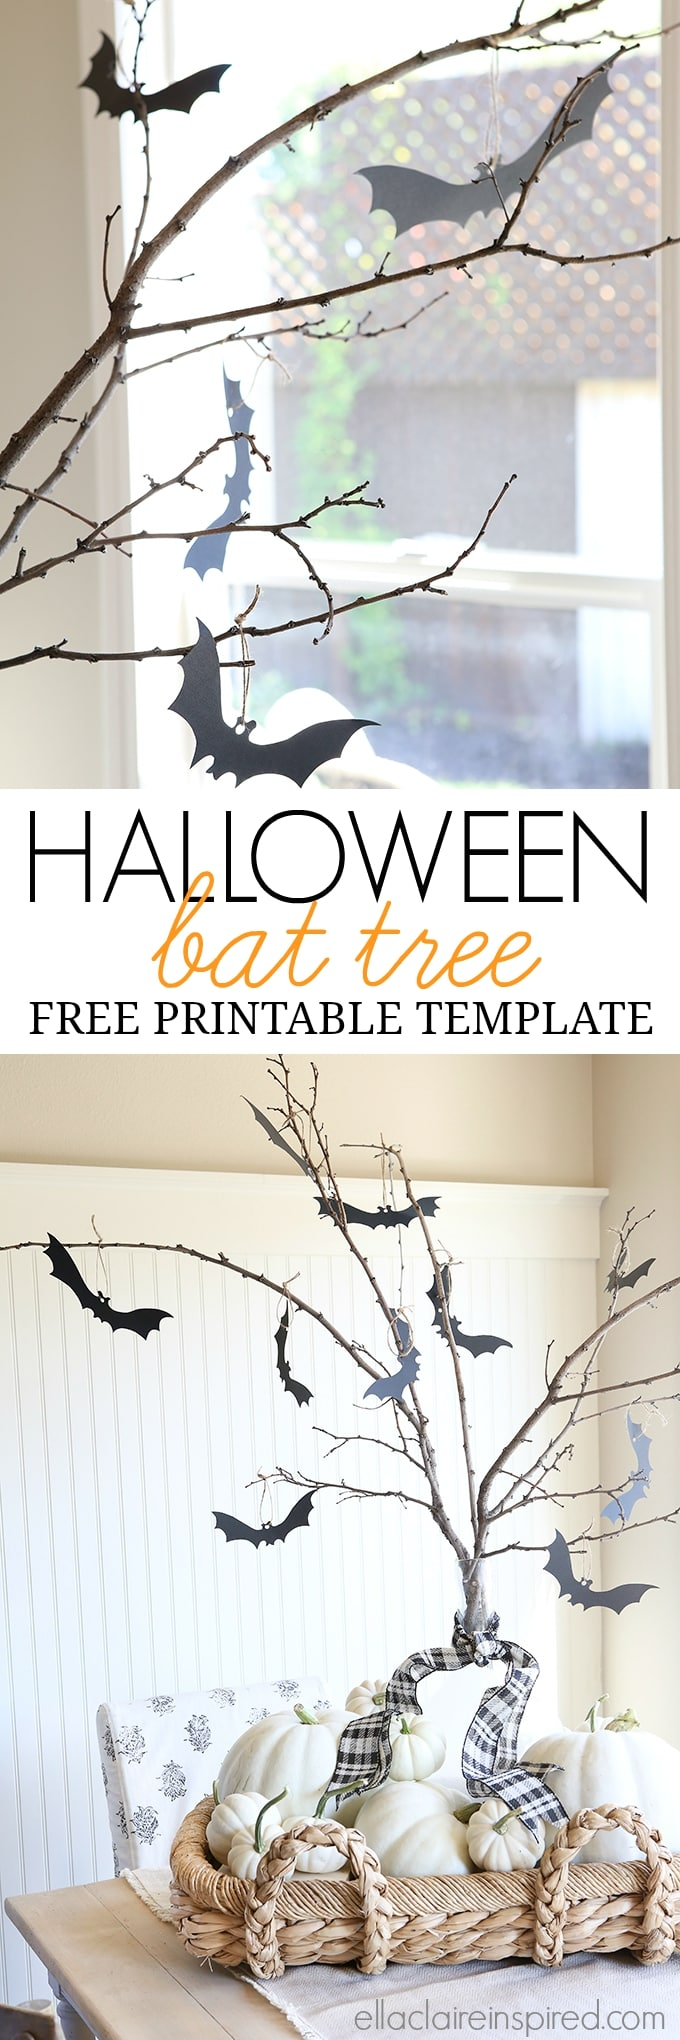 Halloween Bat Tree Free Printable Template